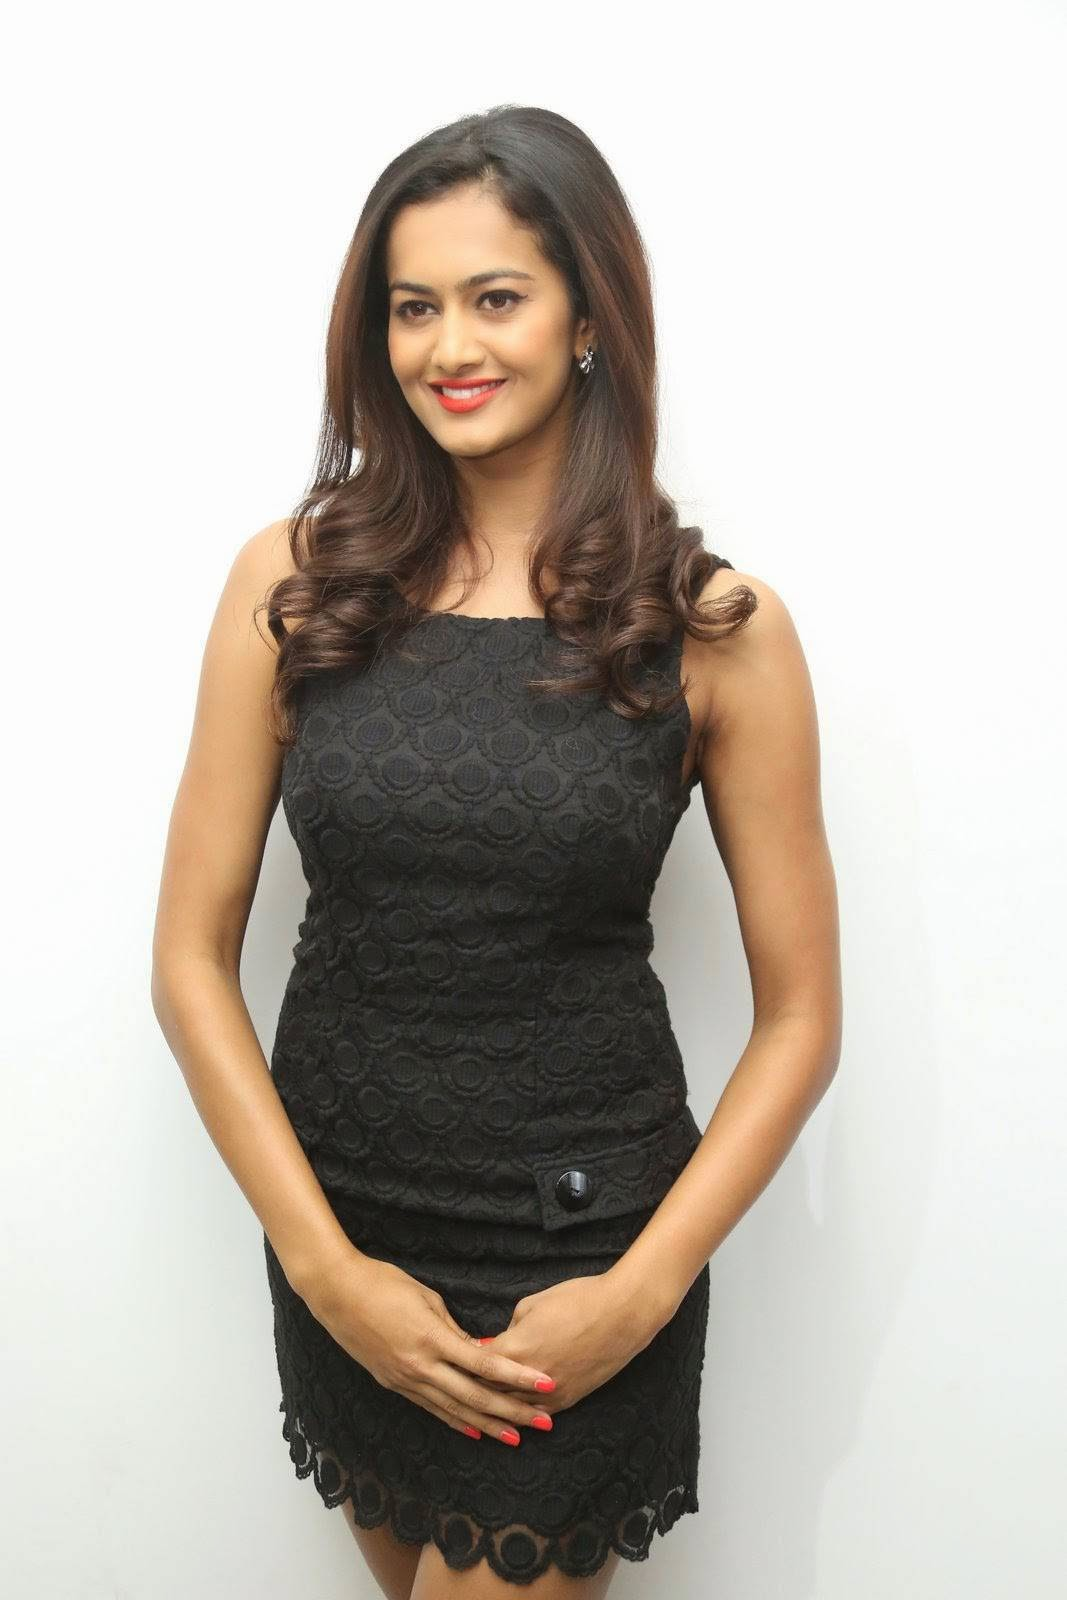 Shubra Aiyappa Images, Shubra Aiyappa Sexy Hot Figure images in Black Dress